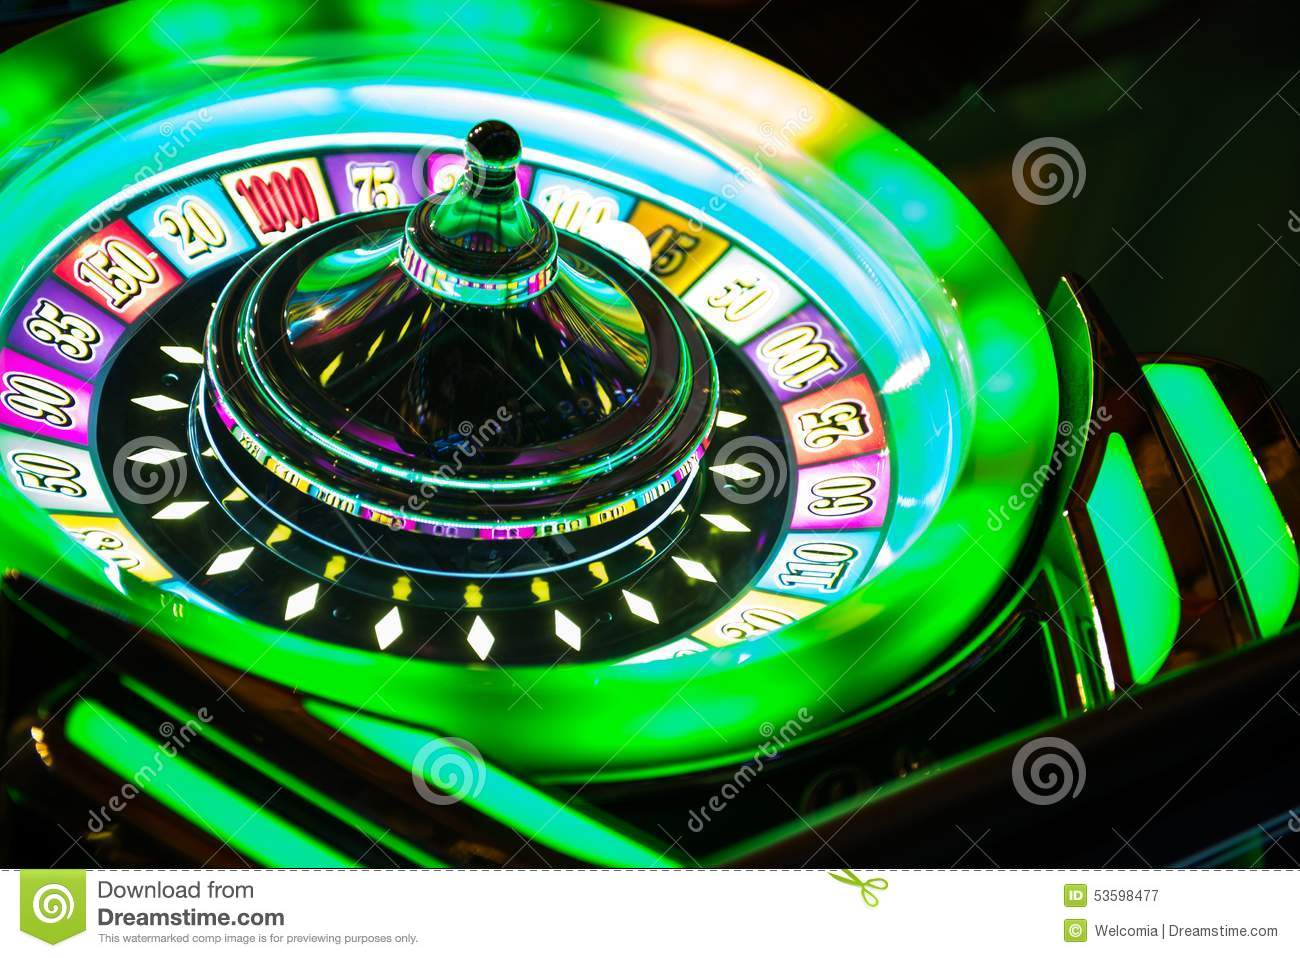 Do you shuffle after every hand in texas holdem